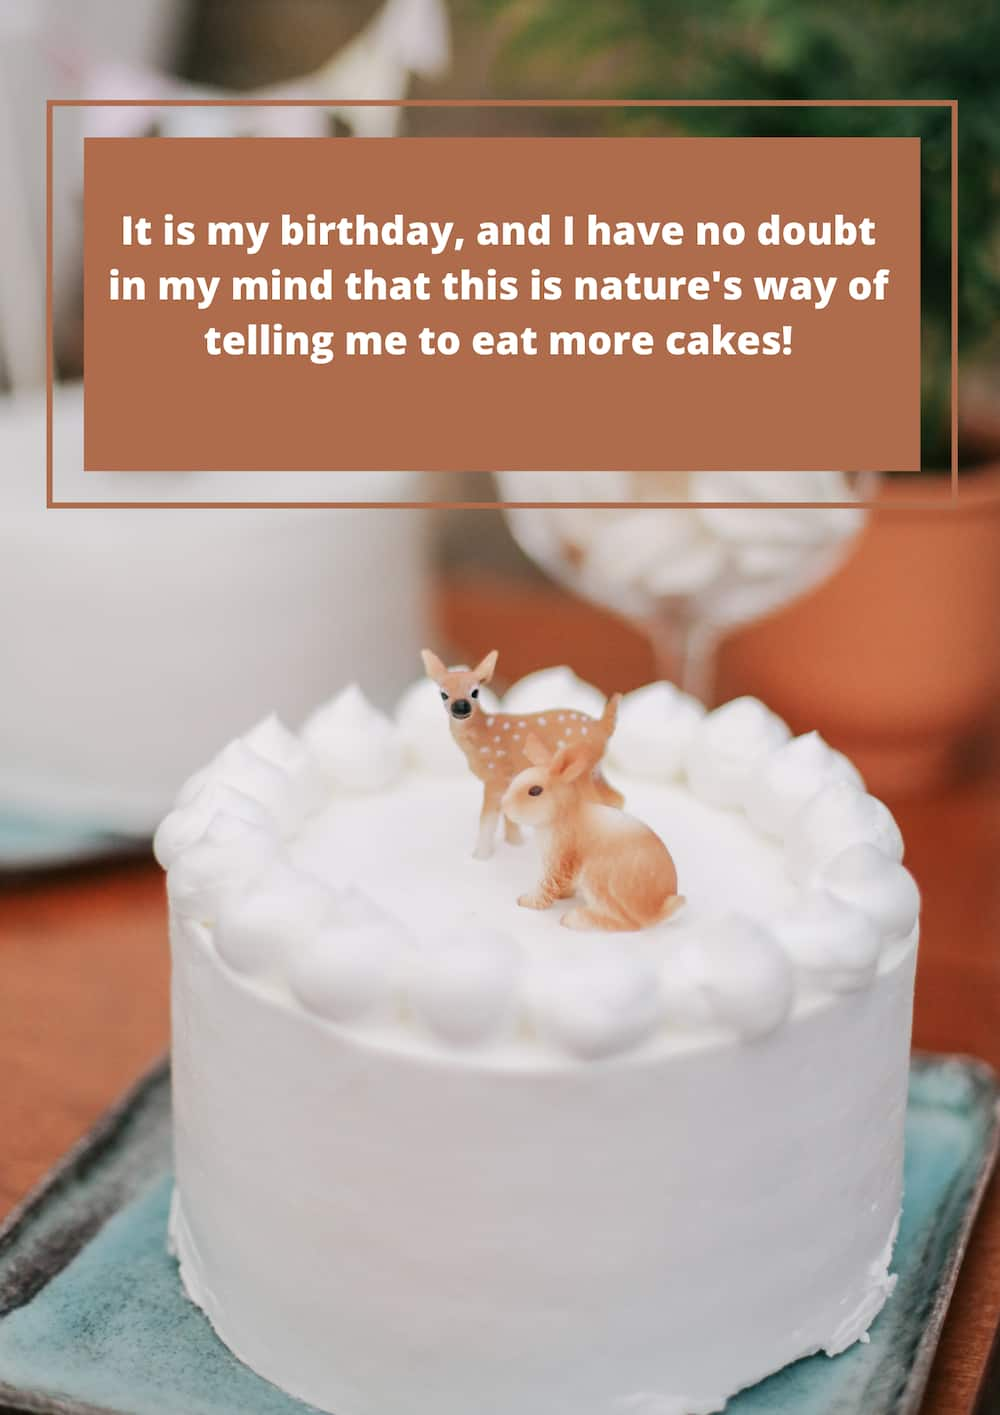 Birthday wishes for self